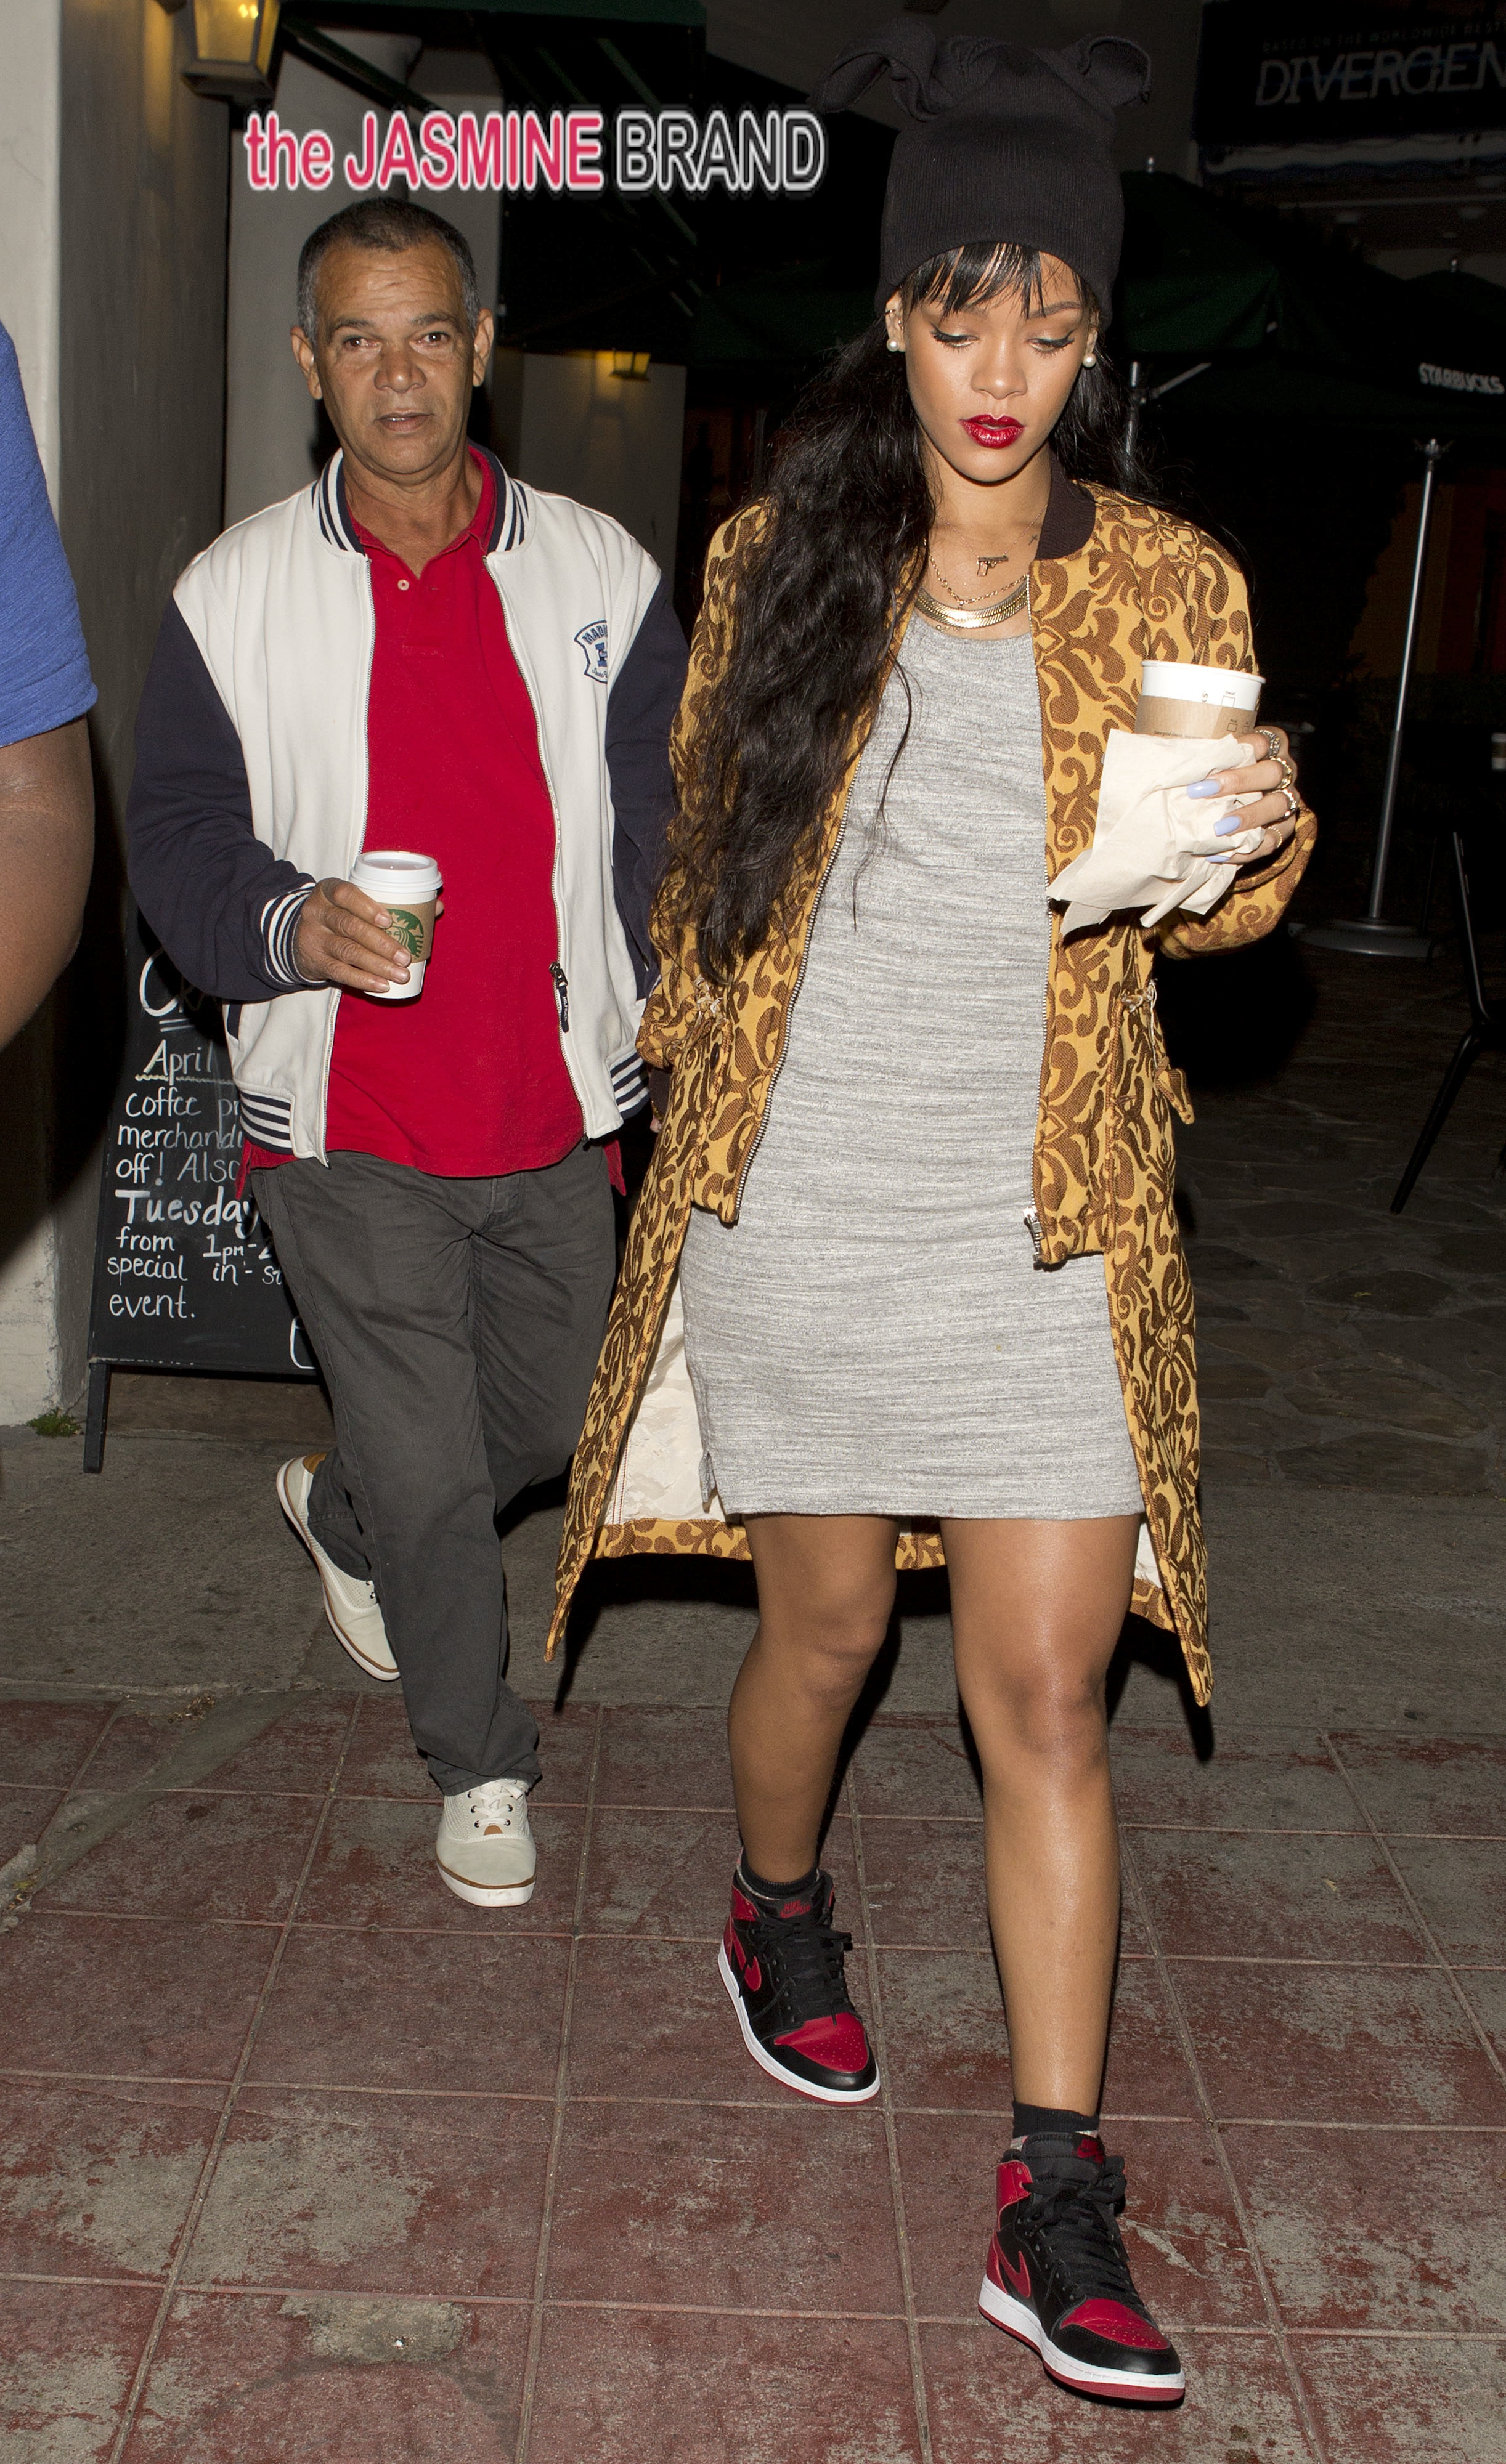 Rihanna and her father Ronald Fenty spent time together over dinner at Giorgio Baldi Restaurant and then went top starbucks in Westwood, CA